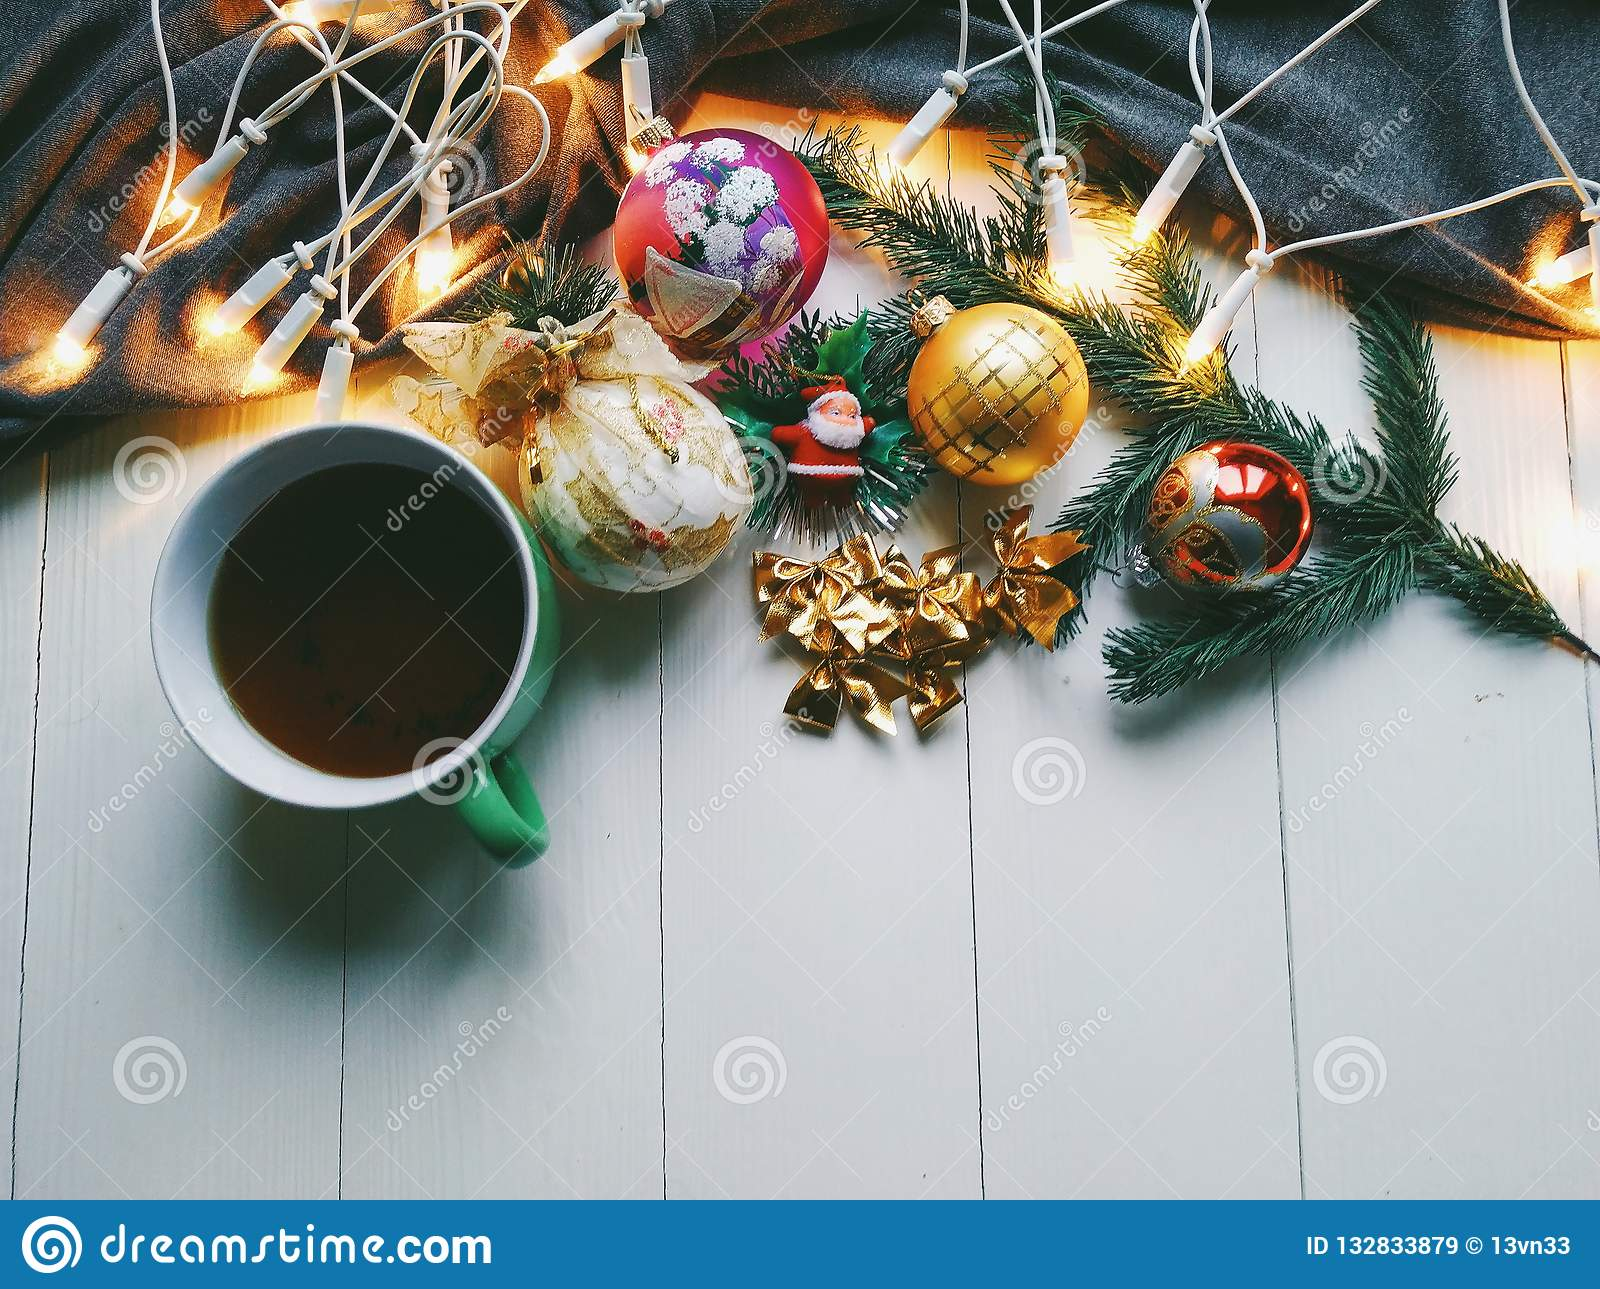 Christmas Toys A Cup Of Hot Tea And Christmas Tree Garland On A